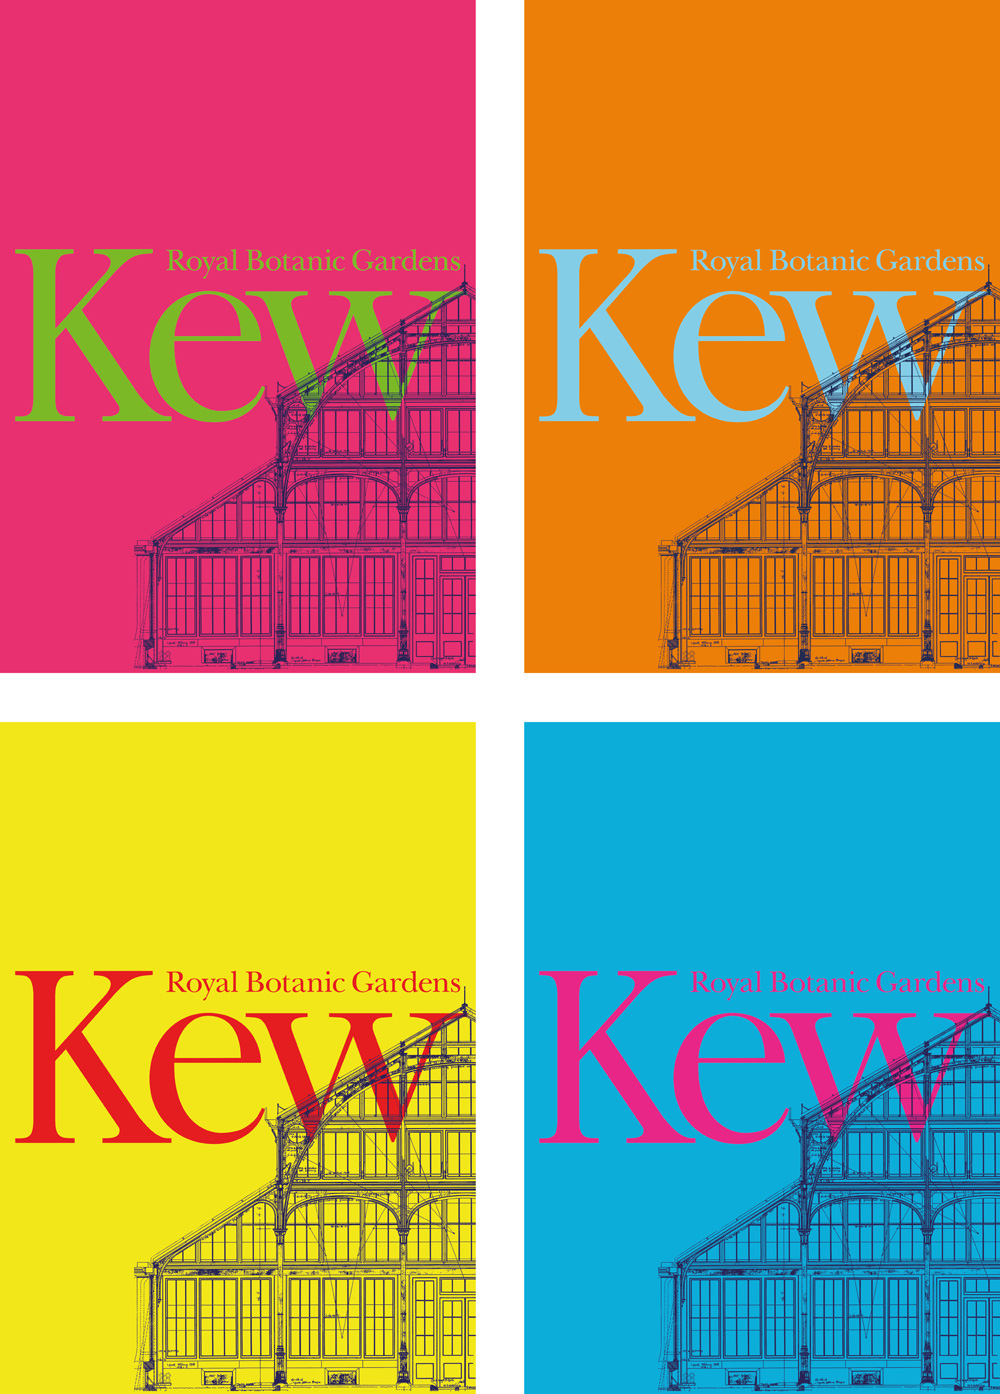 new logo and identity for royal botanic gardens kew by pentagram